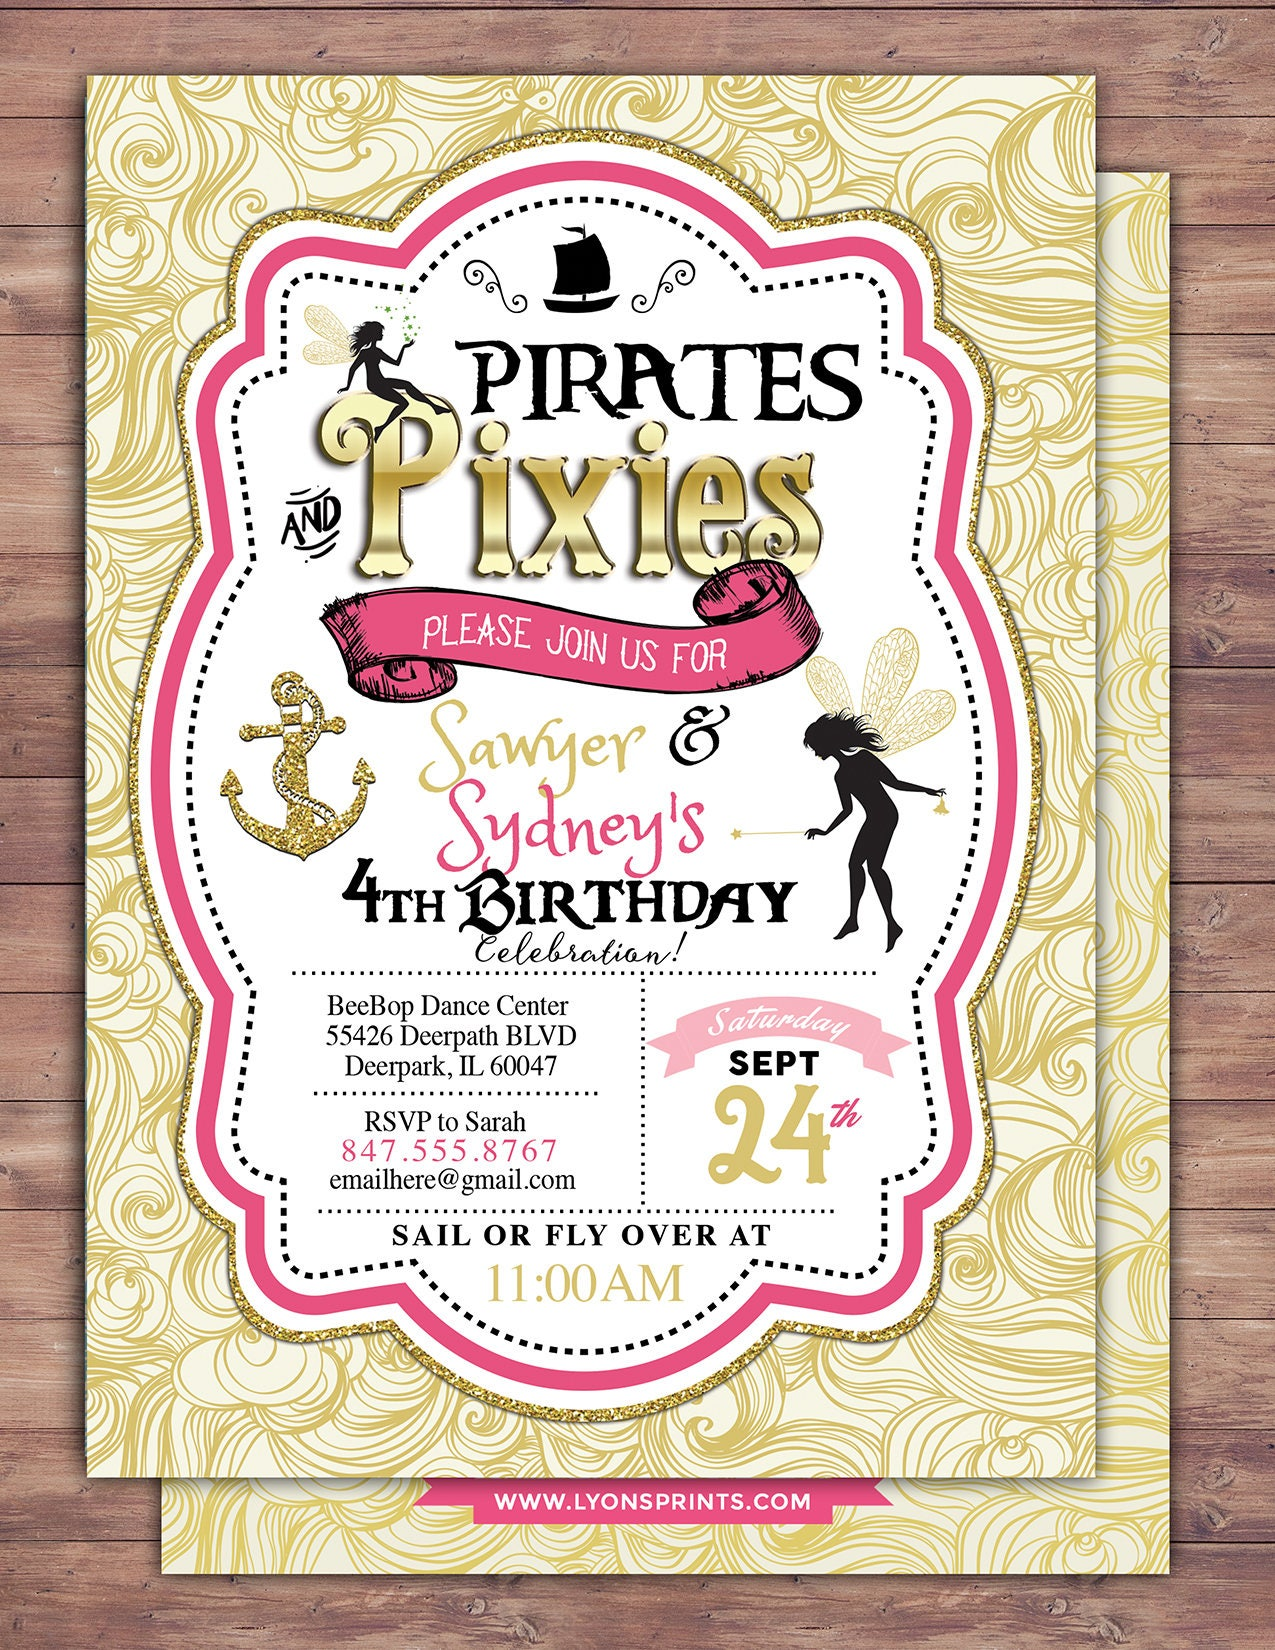 Pirates and Pixie, Party Invitations, Pirate, Princess